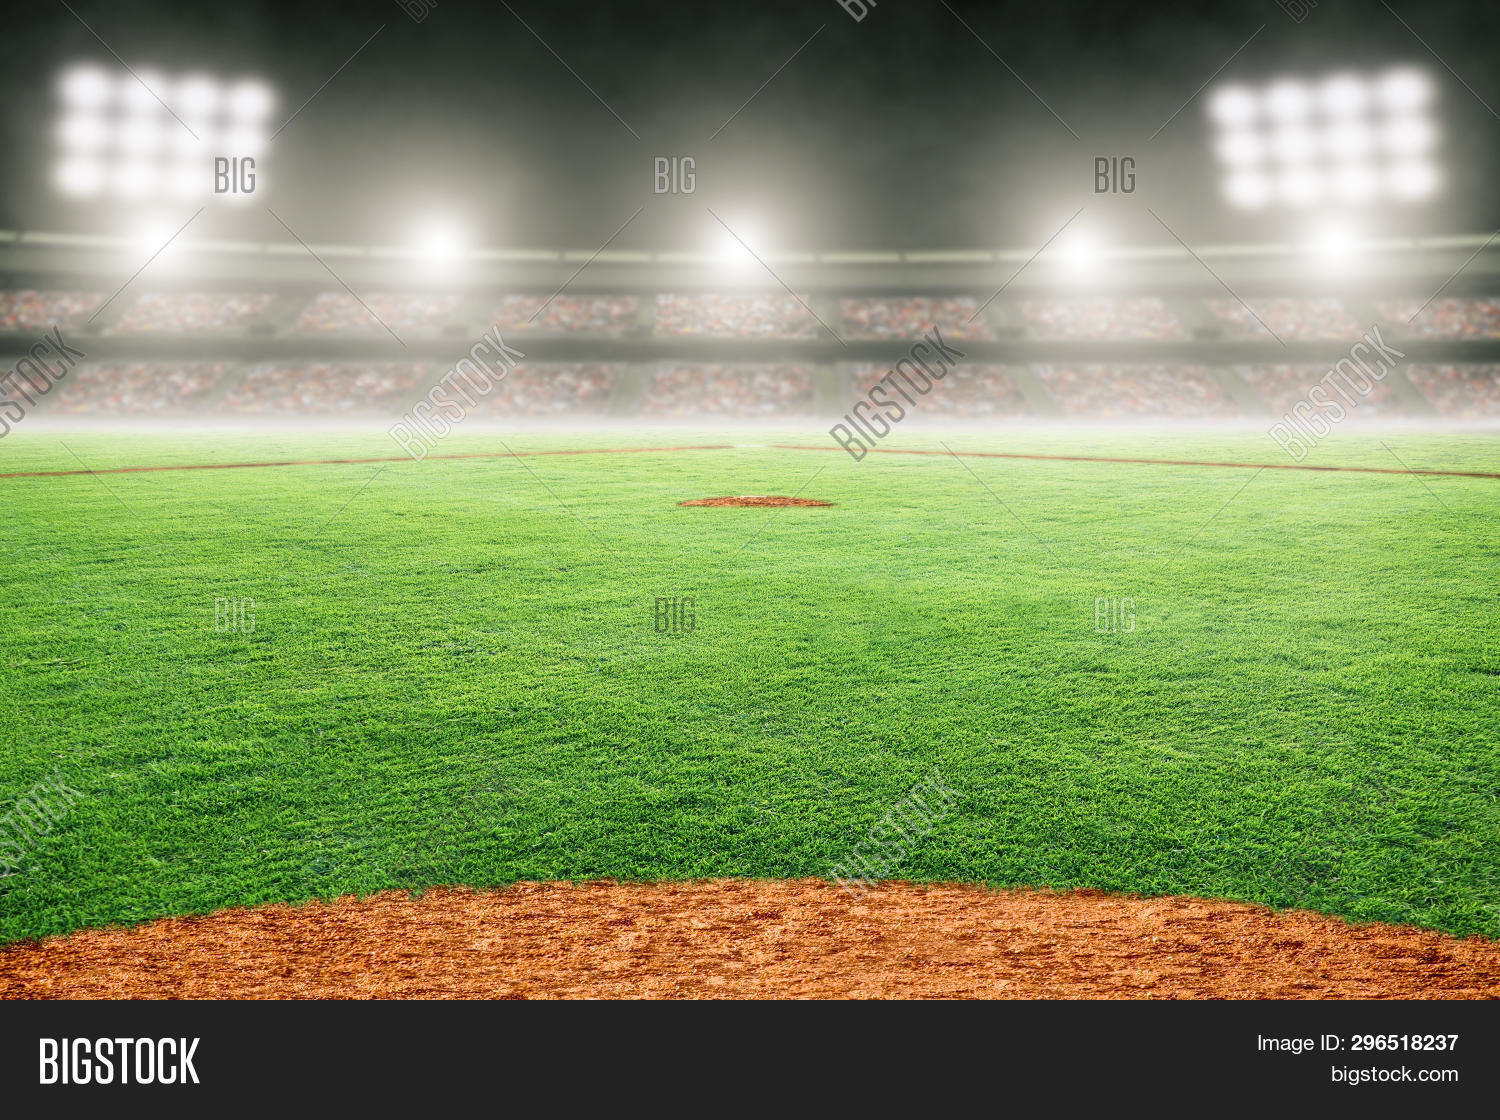 Angle,Arena,Backgrounds,Baseball,Bright,Clay,Competition,Copy,Crowd,Diamond,Dirt,Fans,Field,Game,Grass,Home,Illuminated,League,Low,Match,Mound,No,People,Plate,Softball,Space,Sport,Spotlight,Stadium,Turf,View